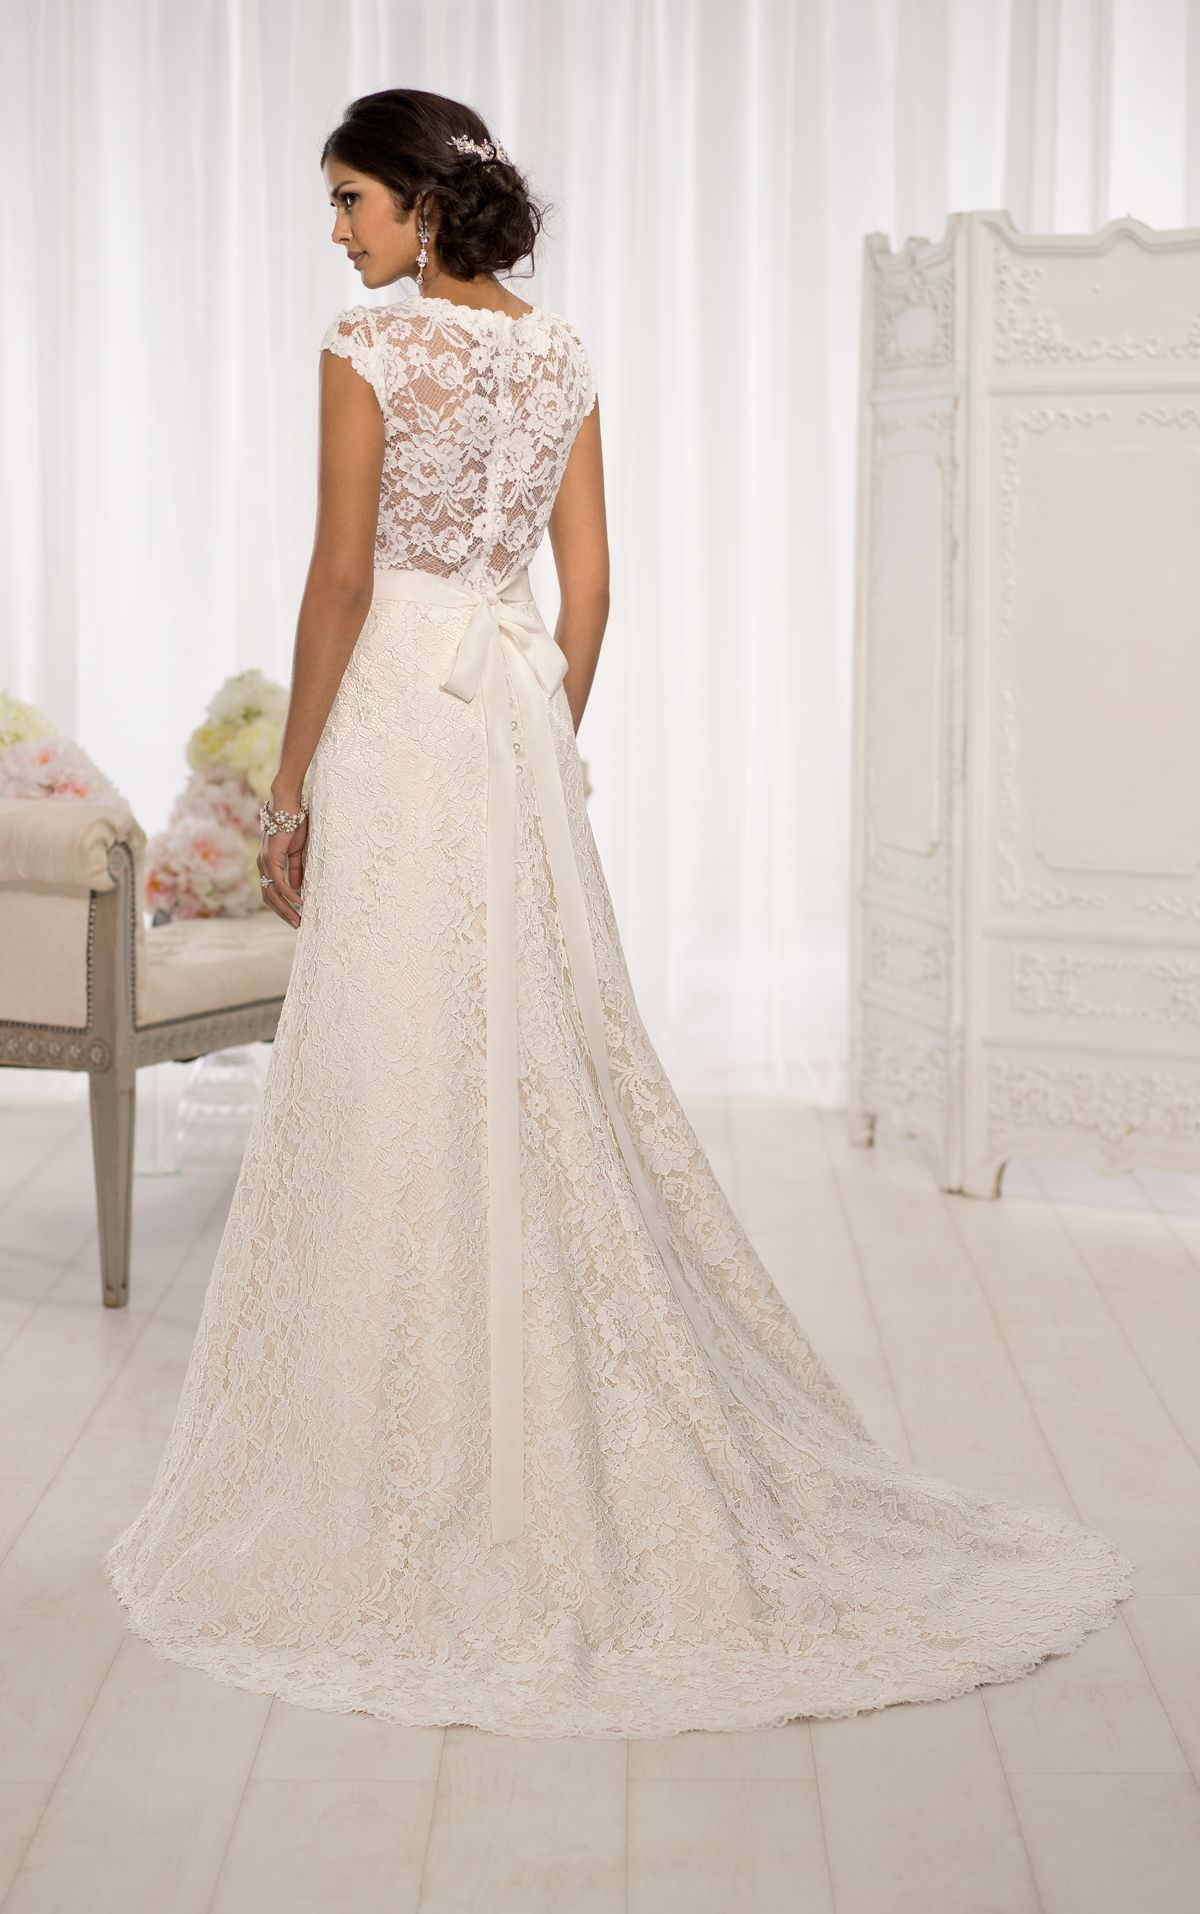 60fe6cda411e Elegant cap sleeve wedding dresses feature a gorgeous Lace over Dolce Satin  A-line silhouette. Exclusive designer cap sleeve wedding dresses by Essense  of ...